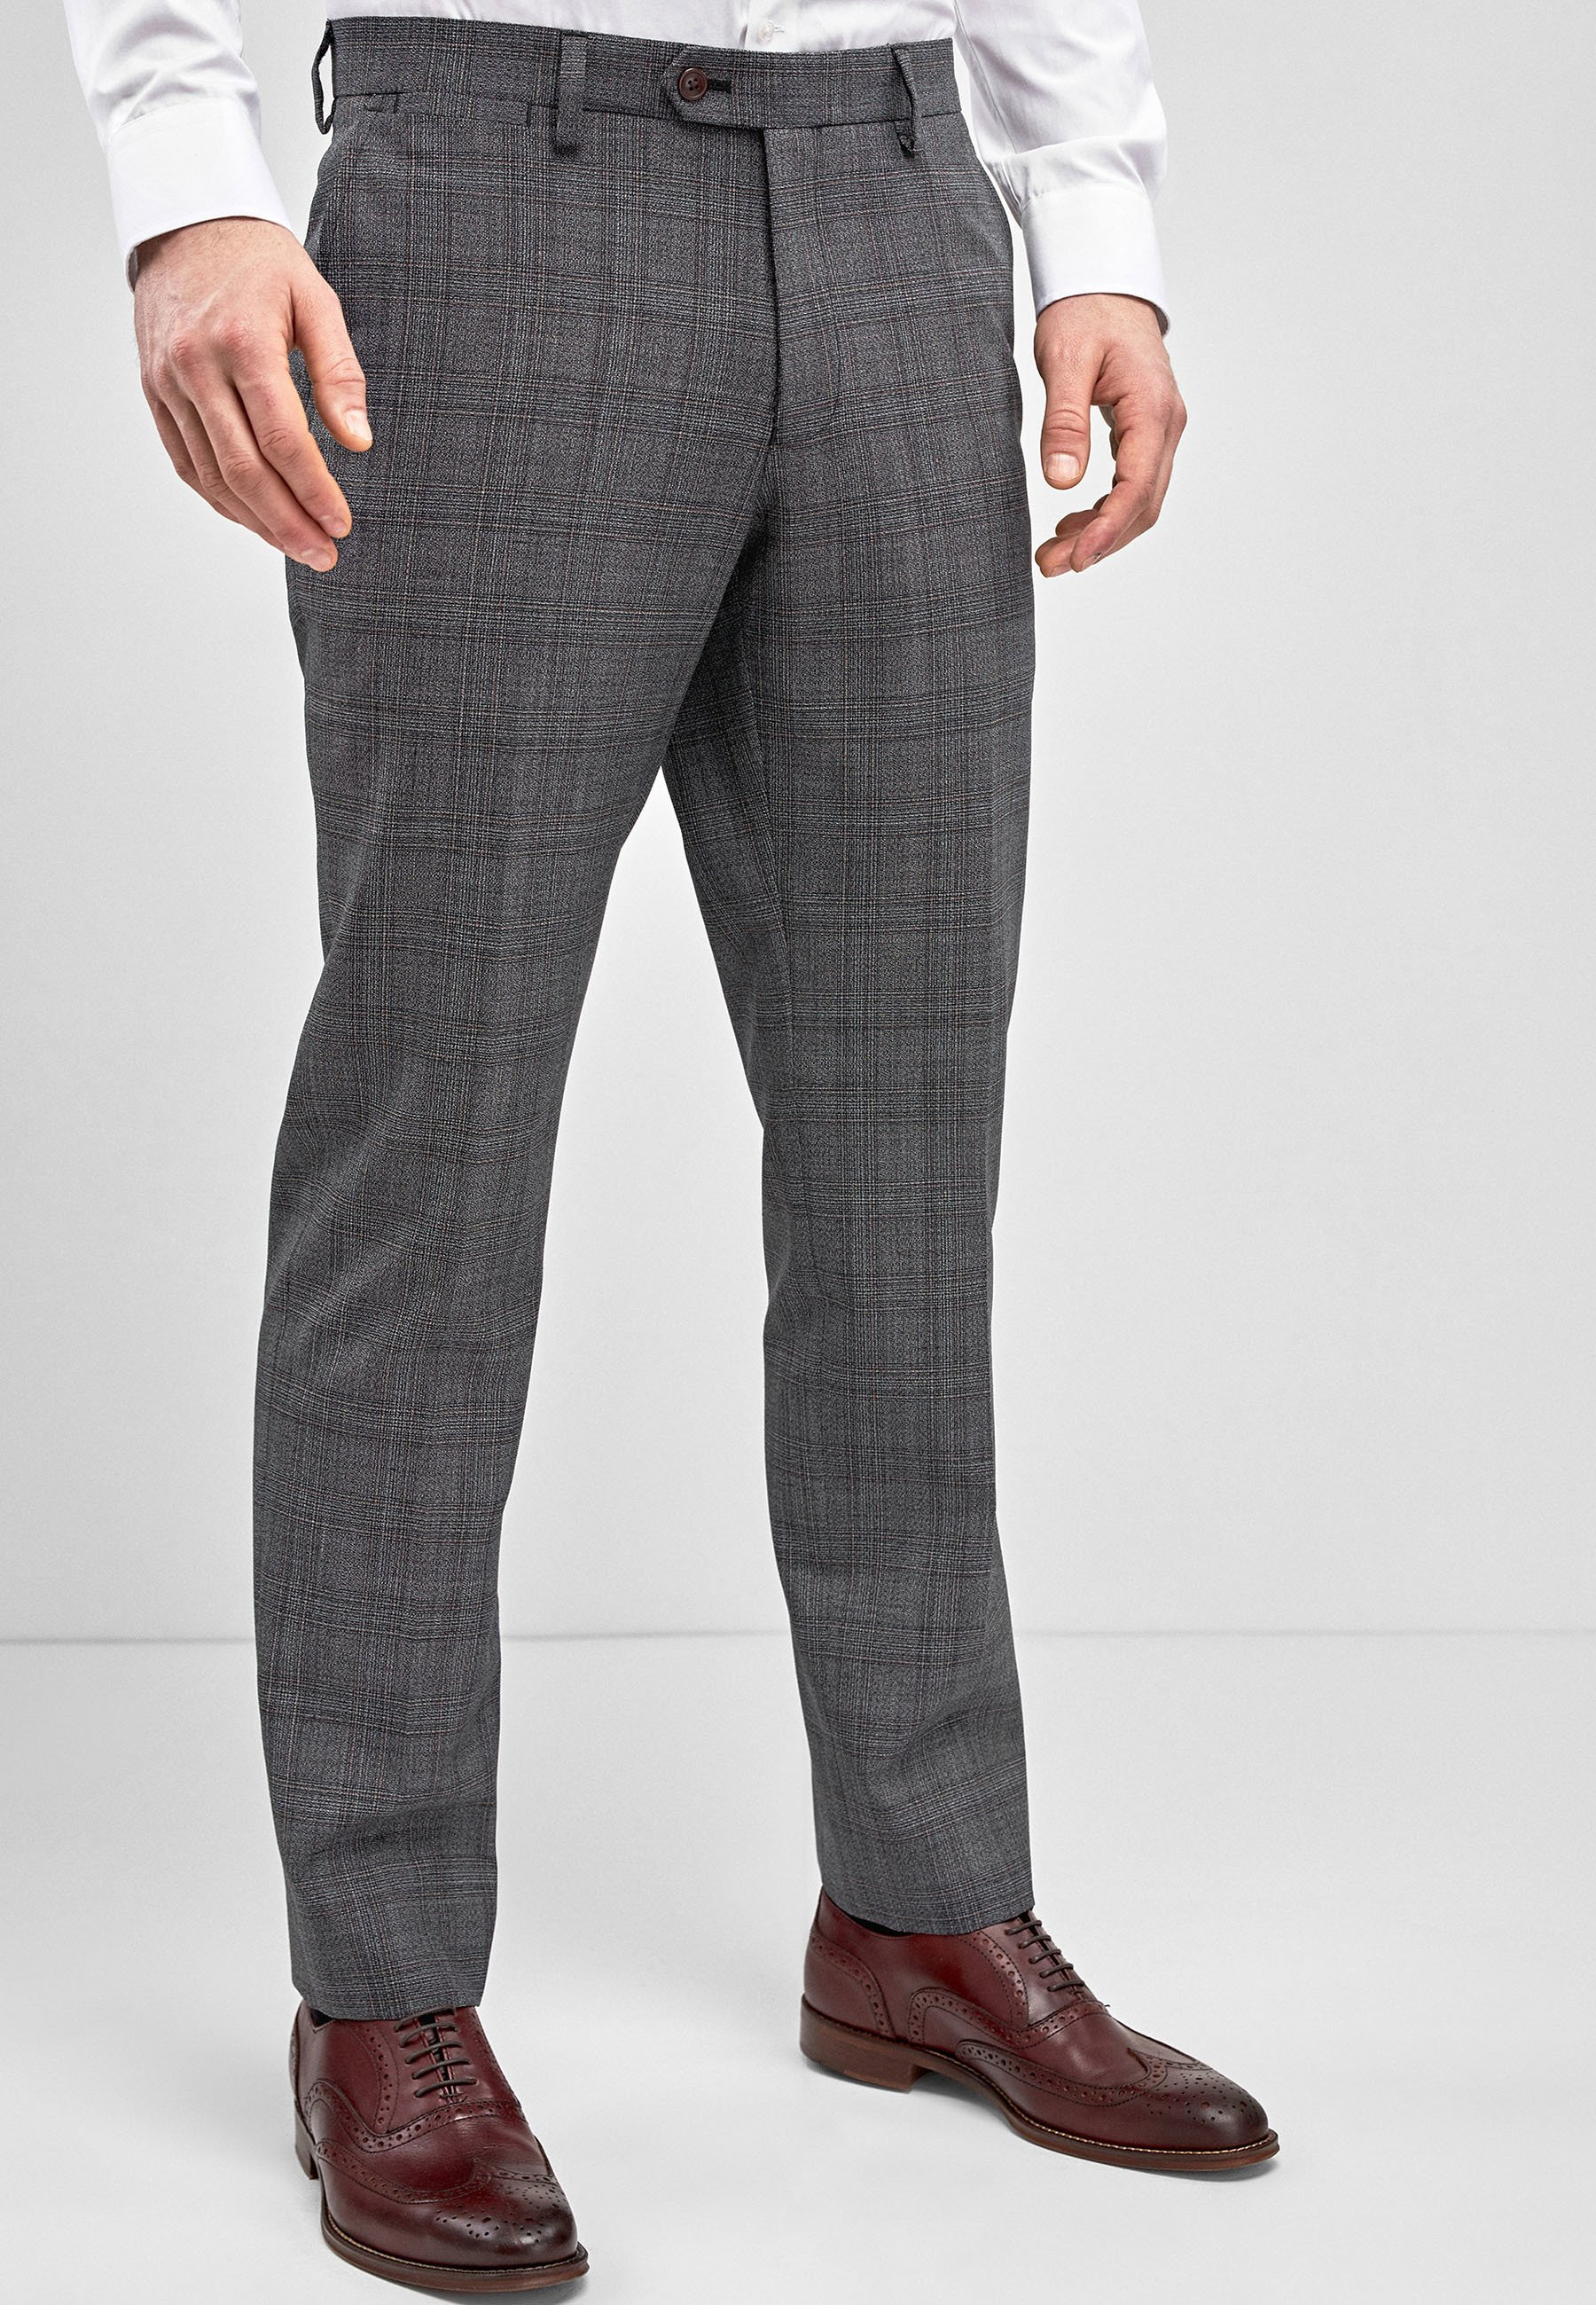 Homme GREY CHECK WOOL MIX TAILORED FIT TROUSERS - Pantalon de costume